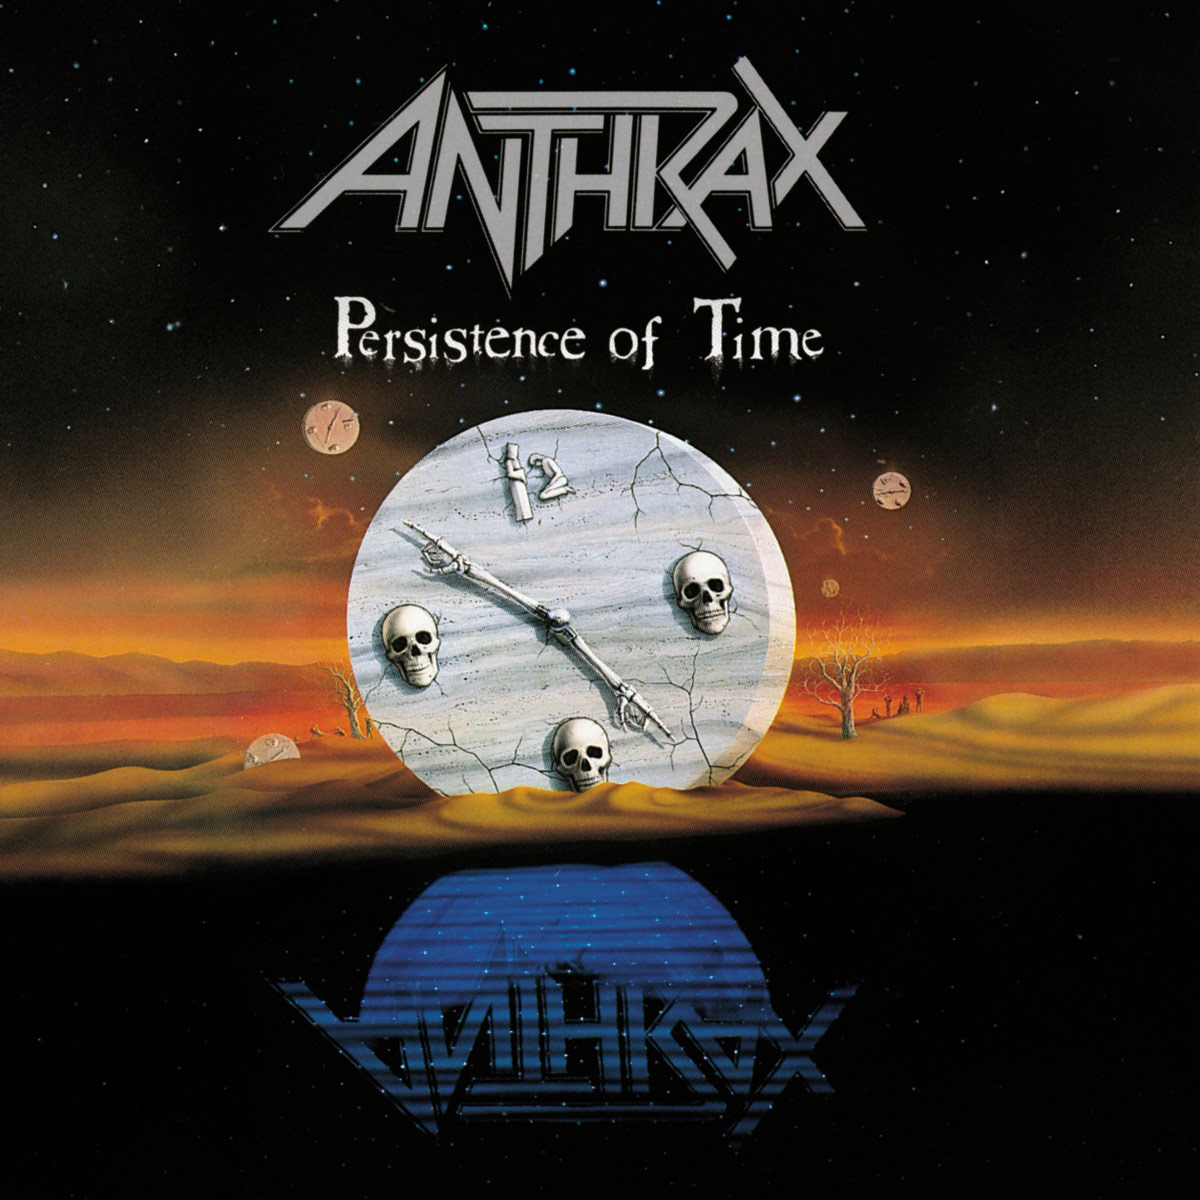 Anthrax - Persistence of Time